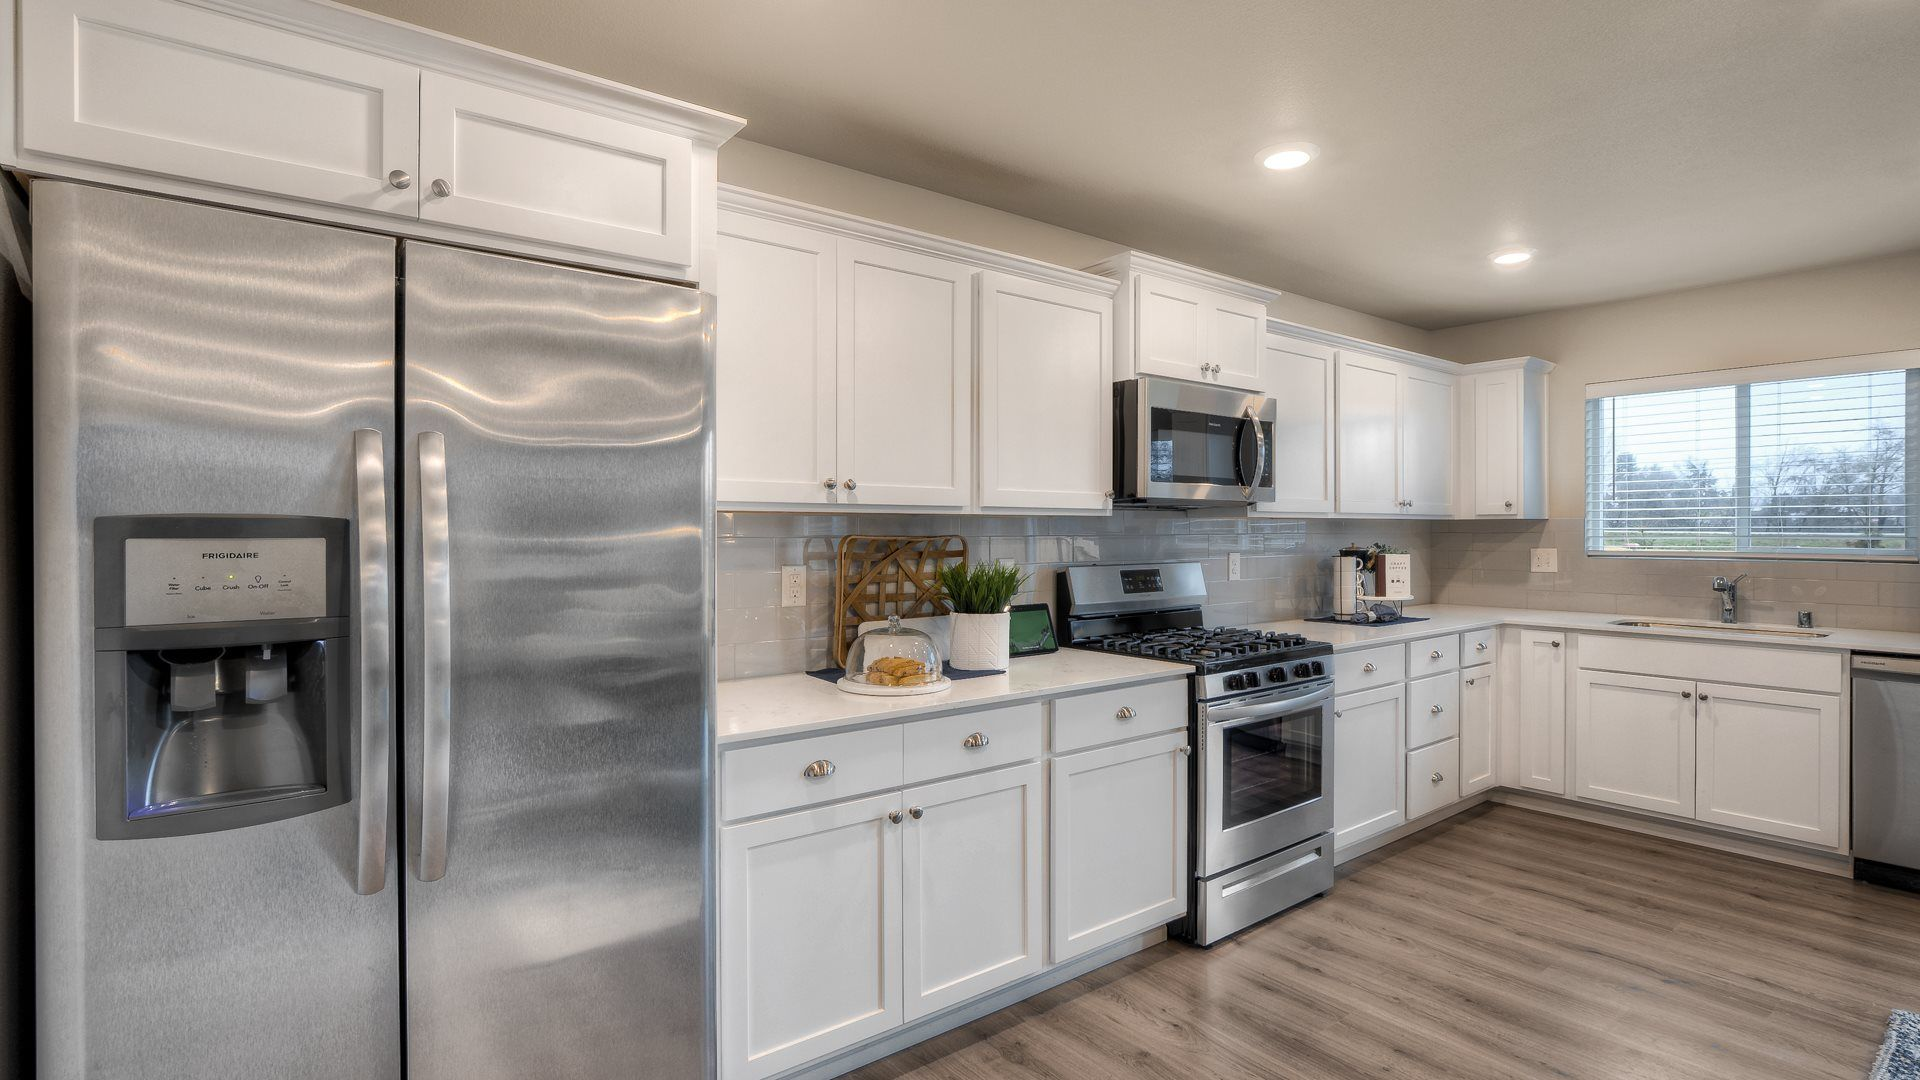 Kitchen featured in the Merlot By Lennar in Olympia, WA